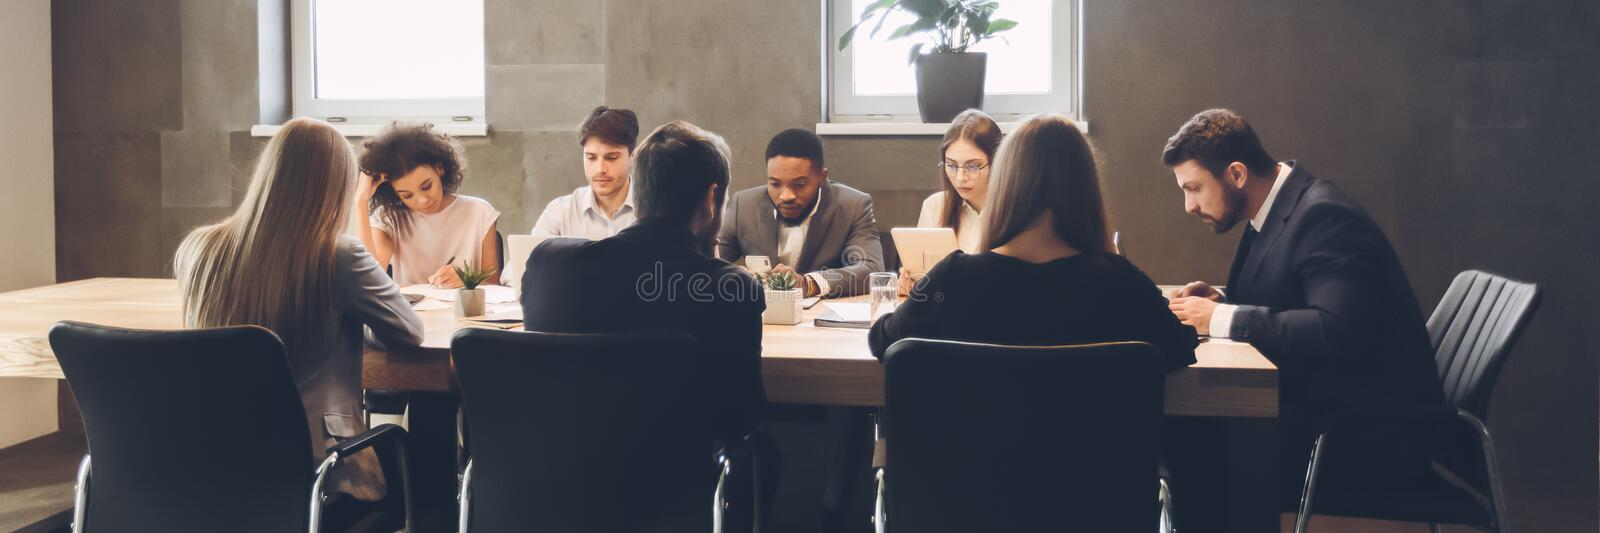 Colleagues having meeting and discussion in boardroom royalty free stock photos